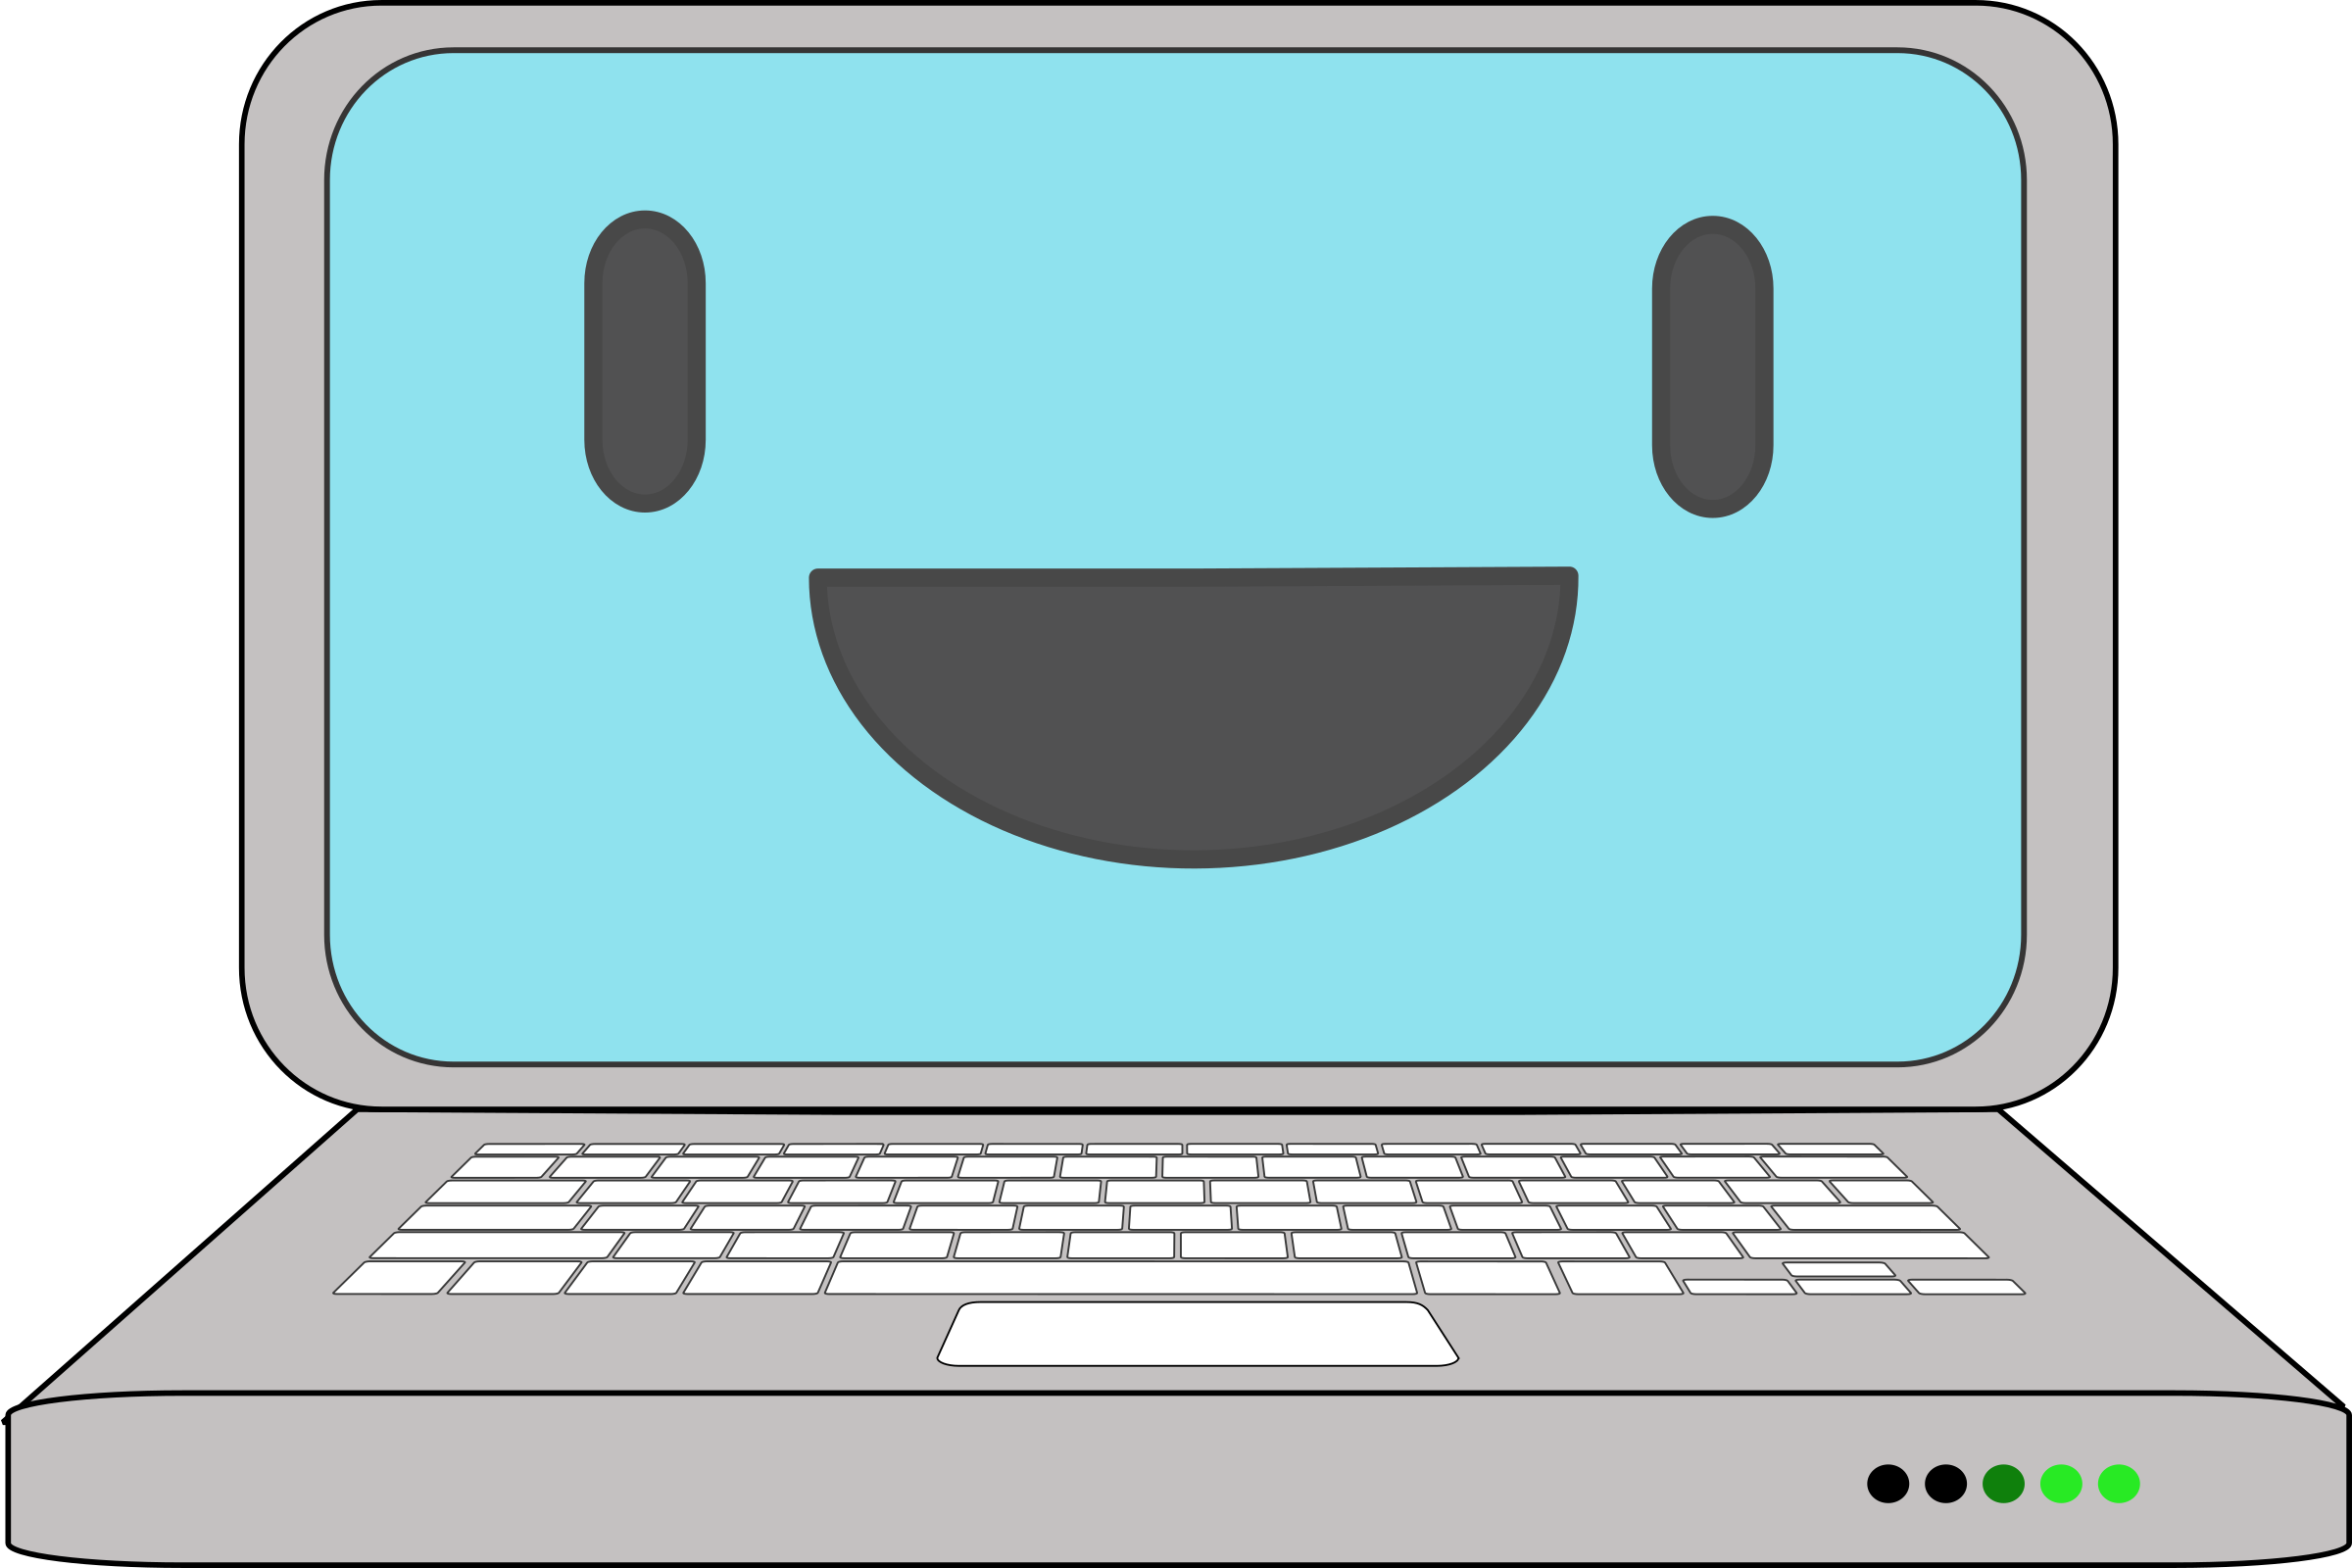 Happy Computer Laptop by qubodup